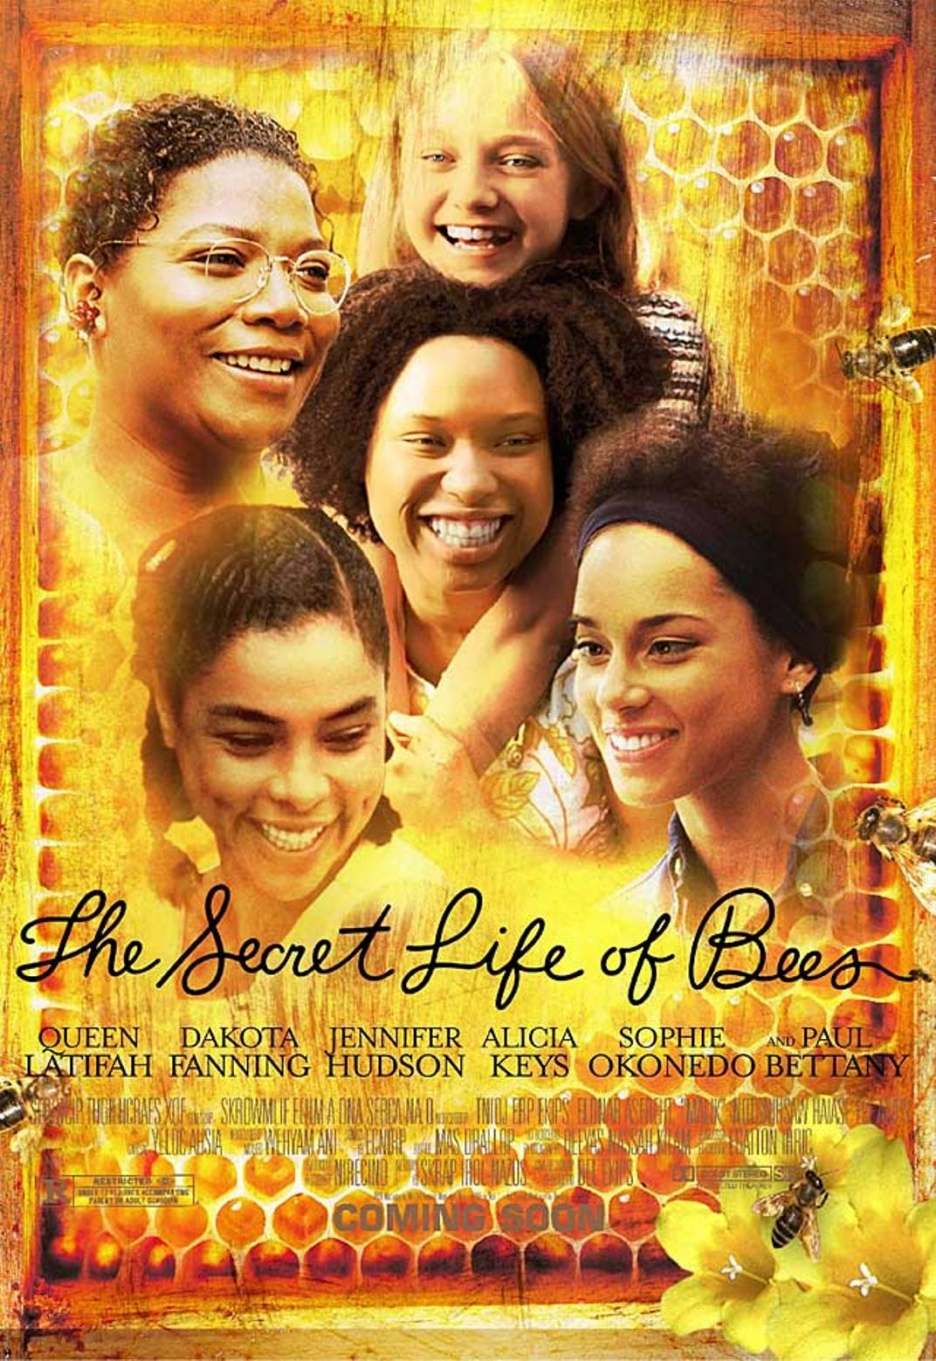 The Secret Life of Bees | Fox Searchlight